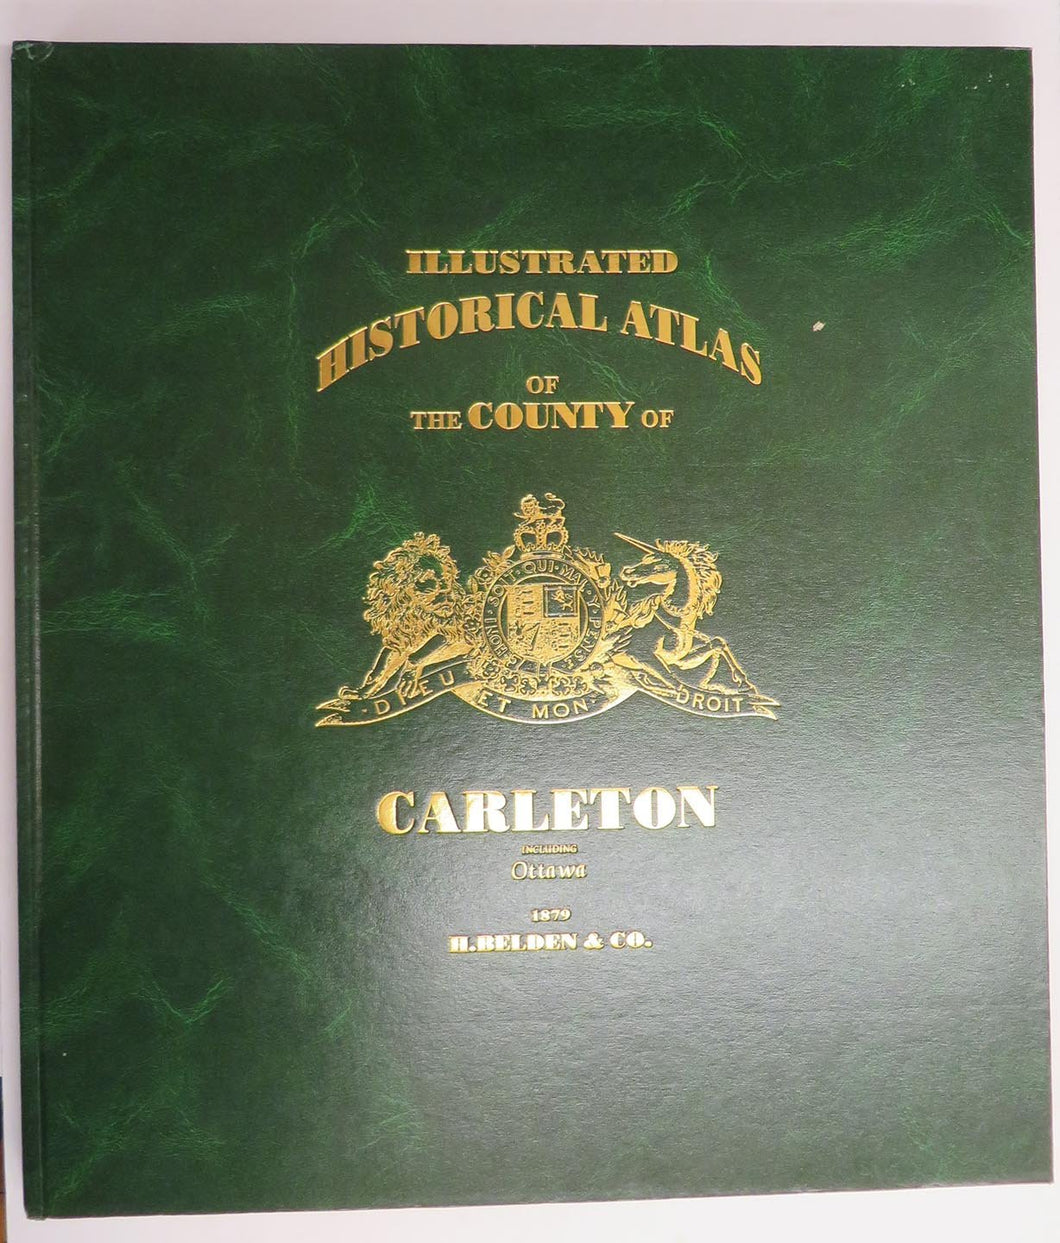 Illustrated Historical Atlas of County of Carleton including Ottawa